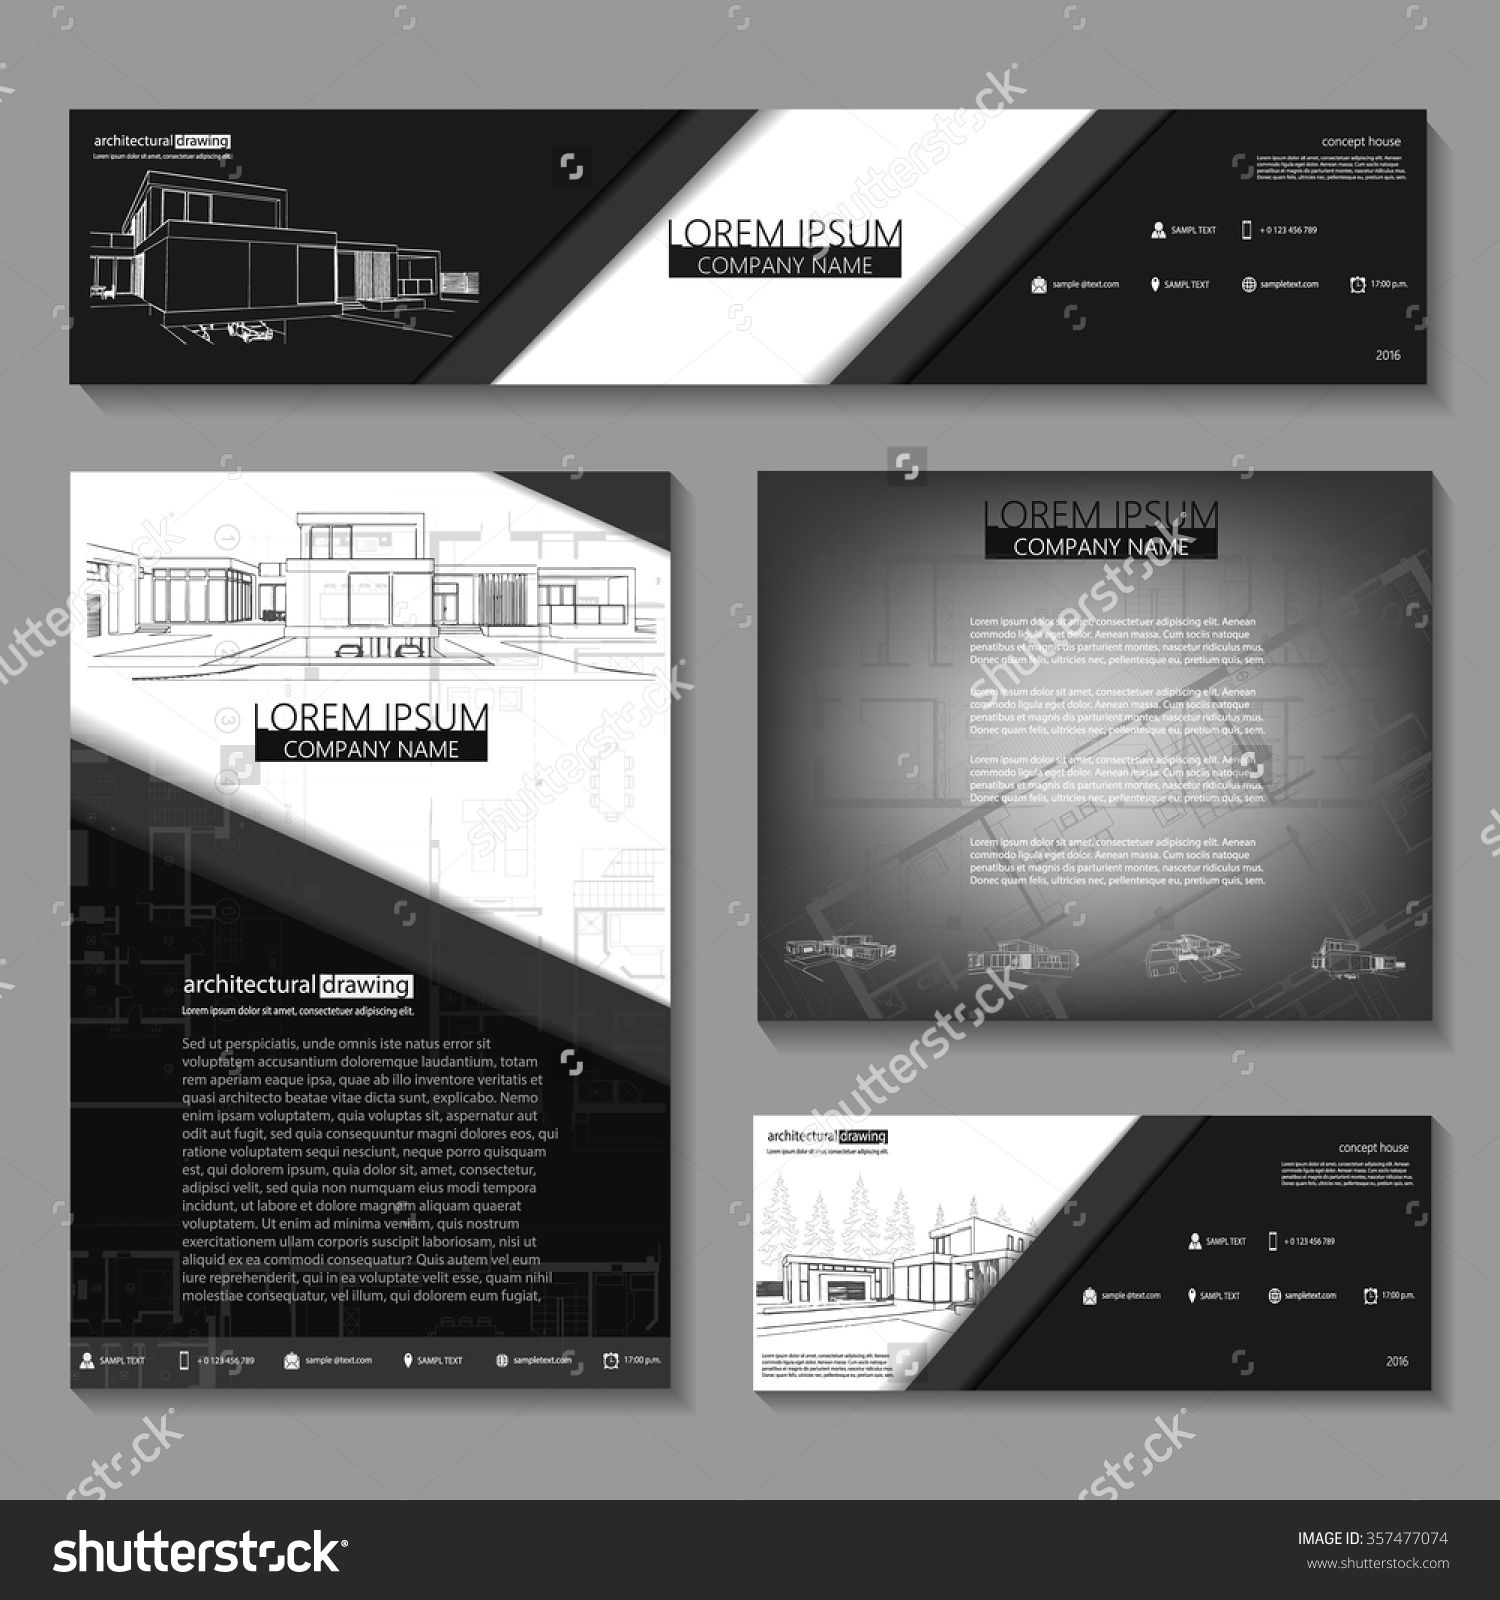 Genial Business Cards Design With Cityscape Sketch For Architectural Company.  Architectural Background For Architectural Project,